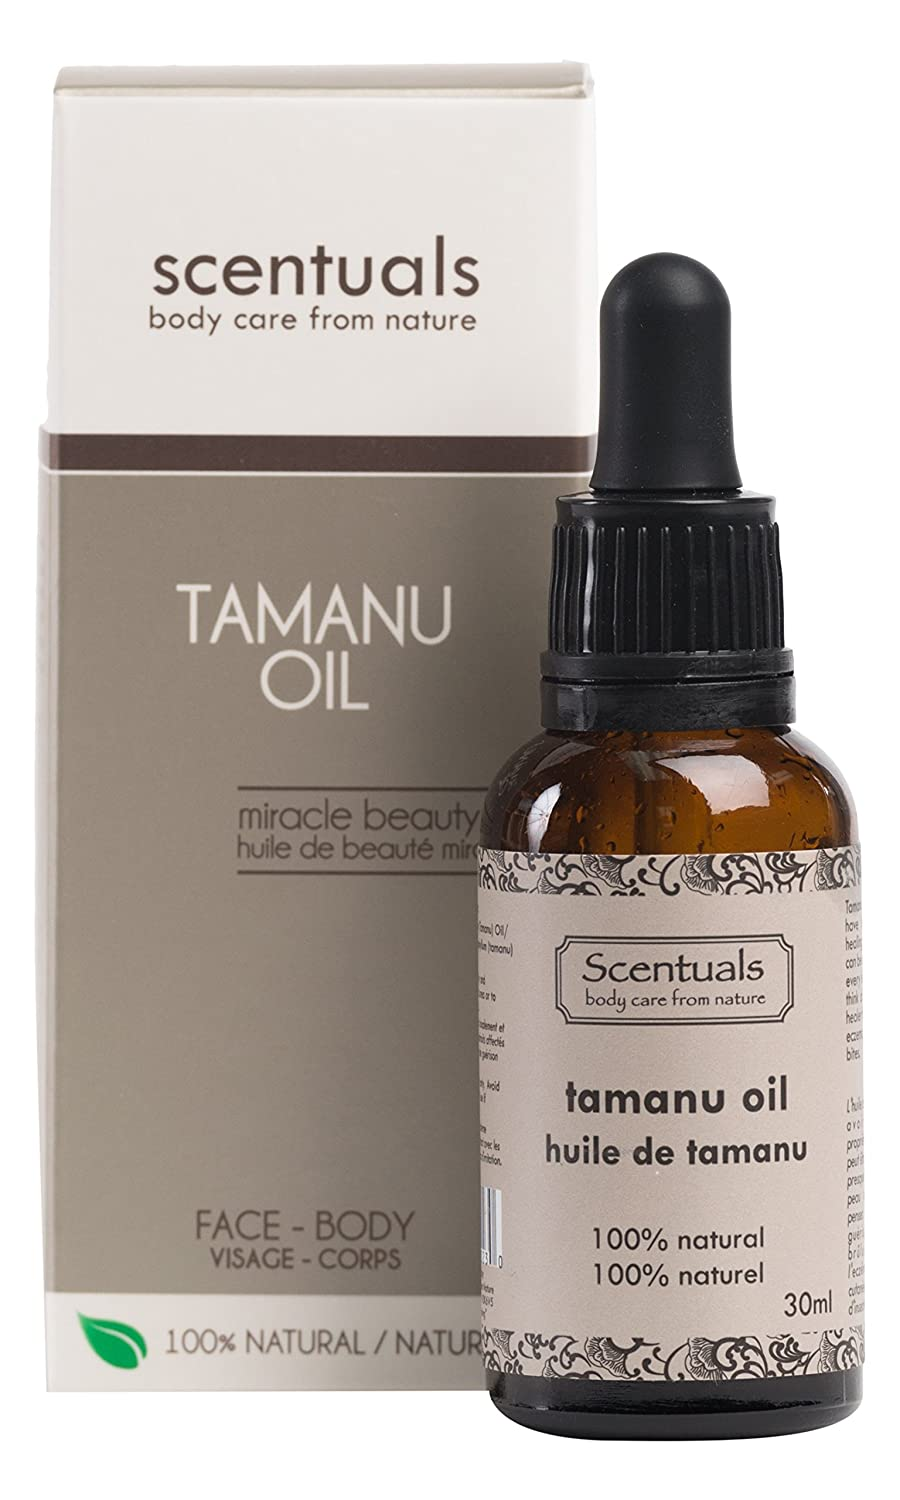 Scentuals Pure Tamanu Oil 100-Percent Natural Beauty Oil, 30 Milliliters